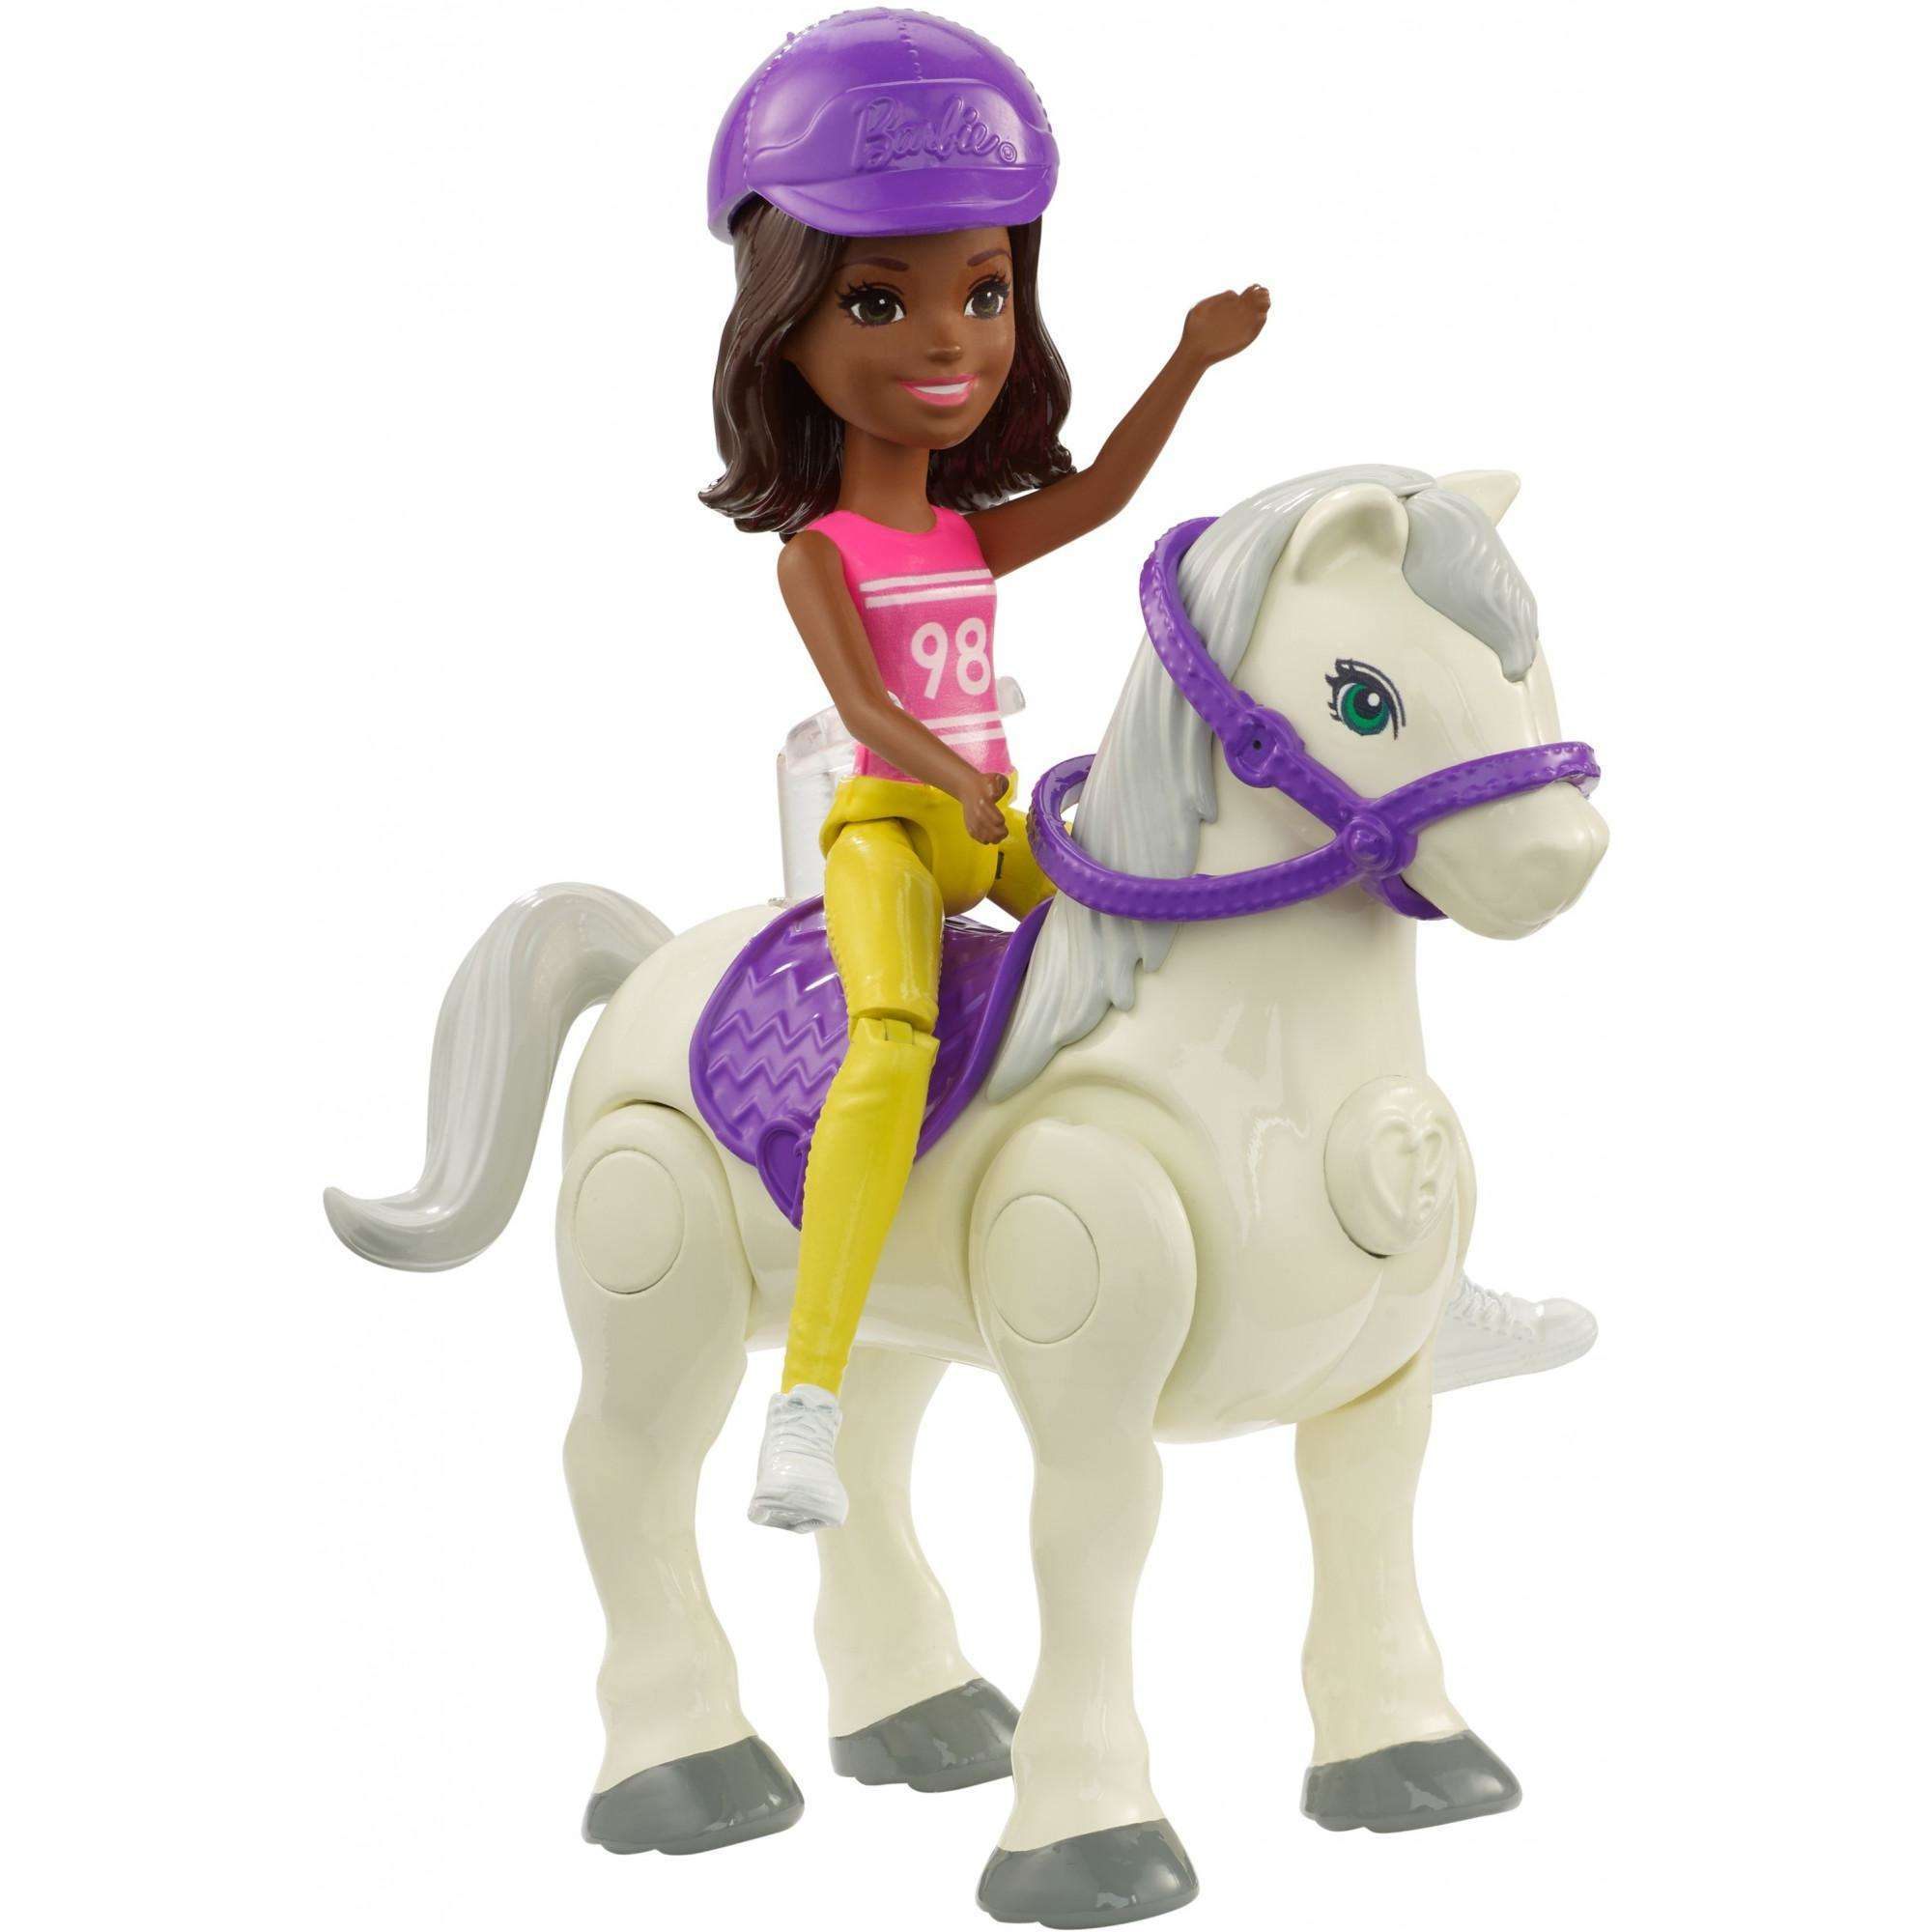 Barbie On The Go White Pony and Purple Fashion Doll